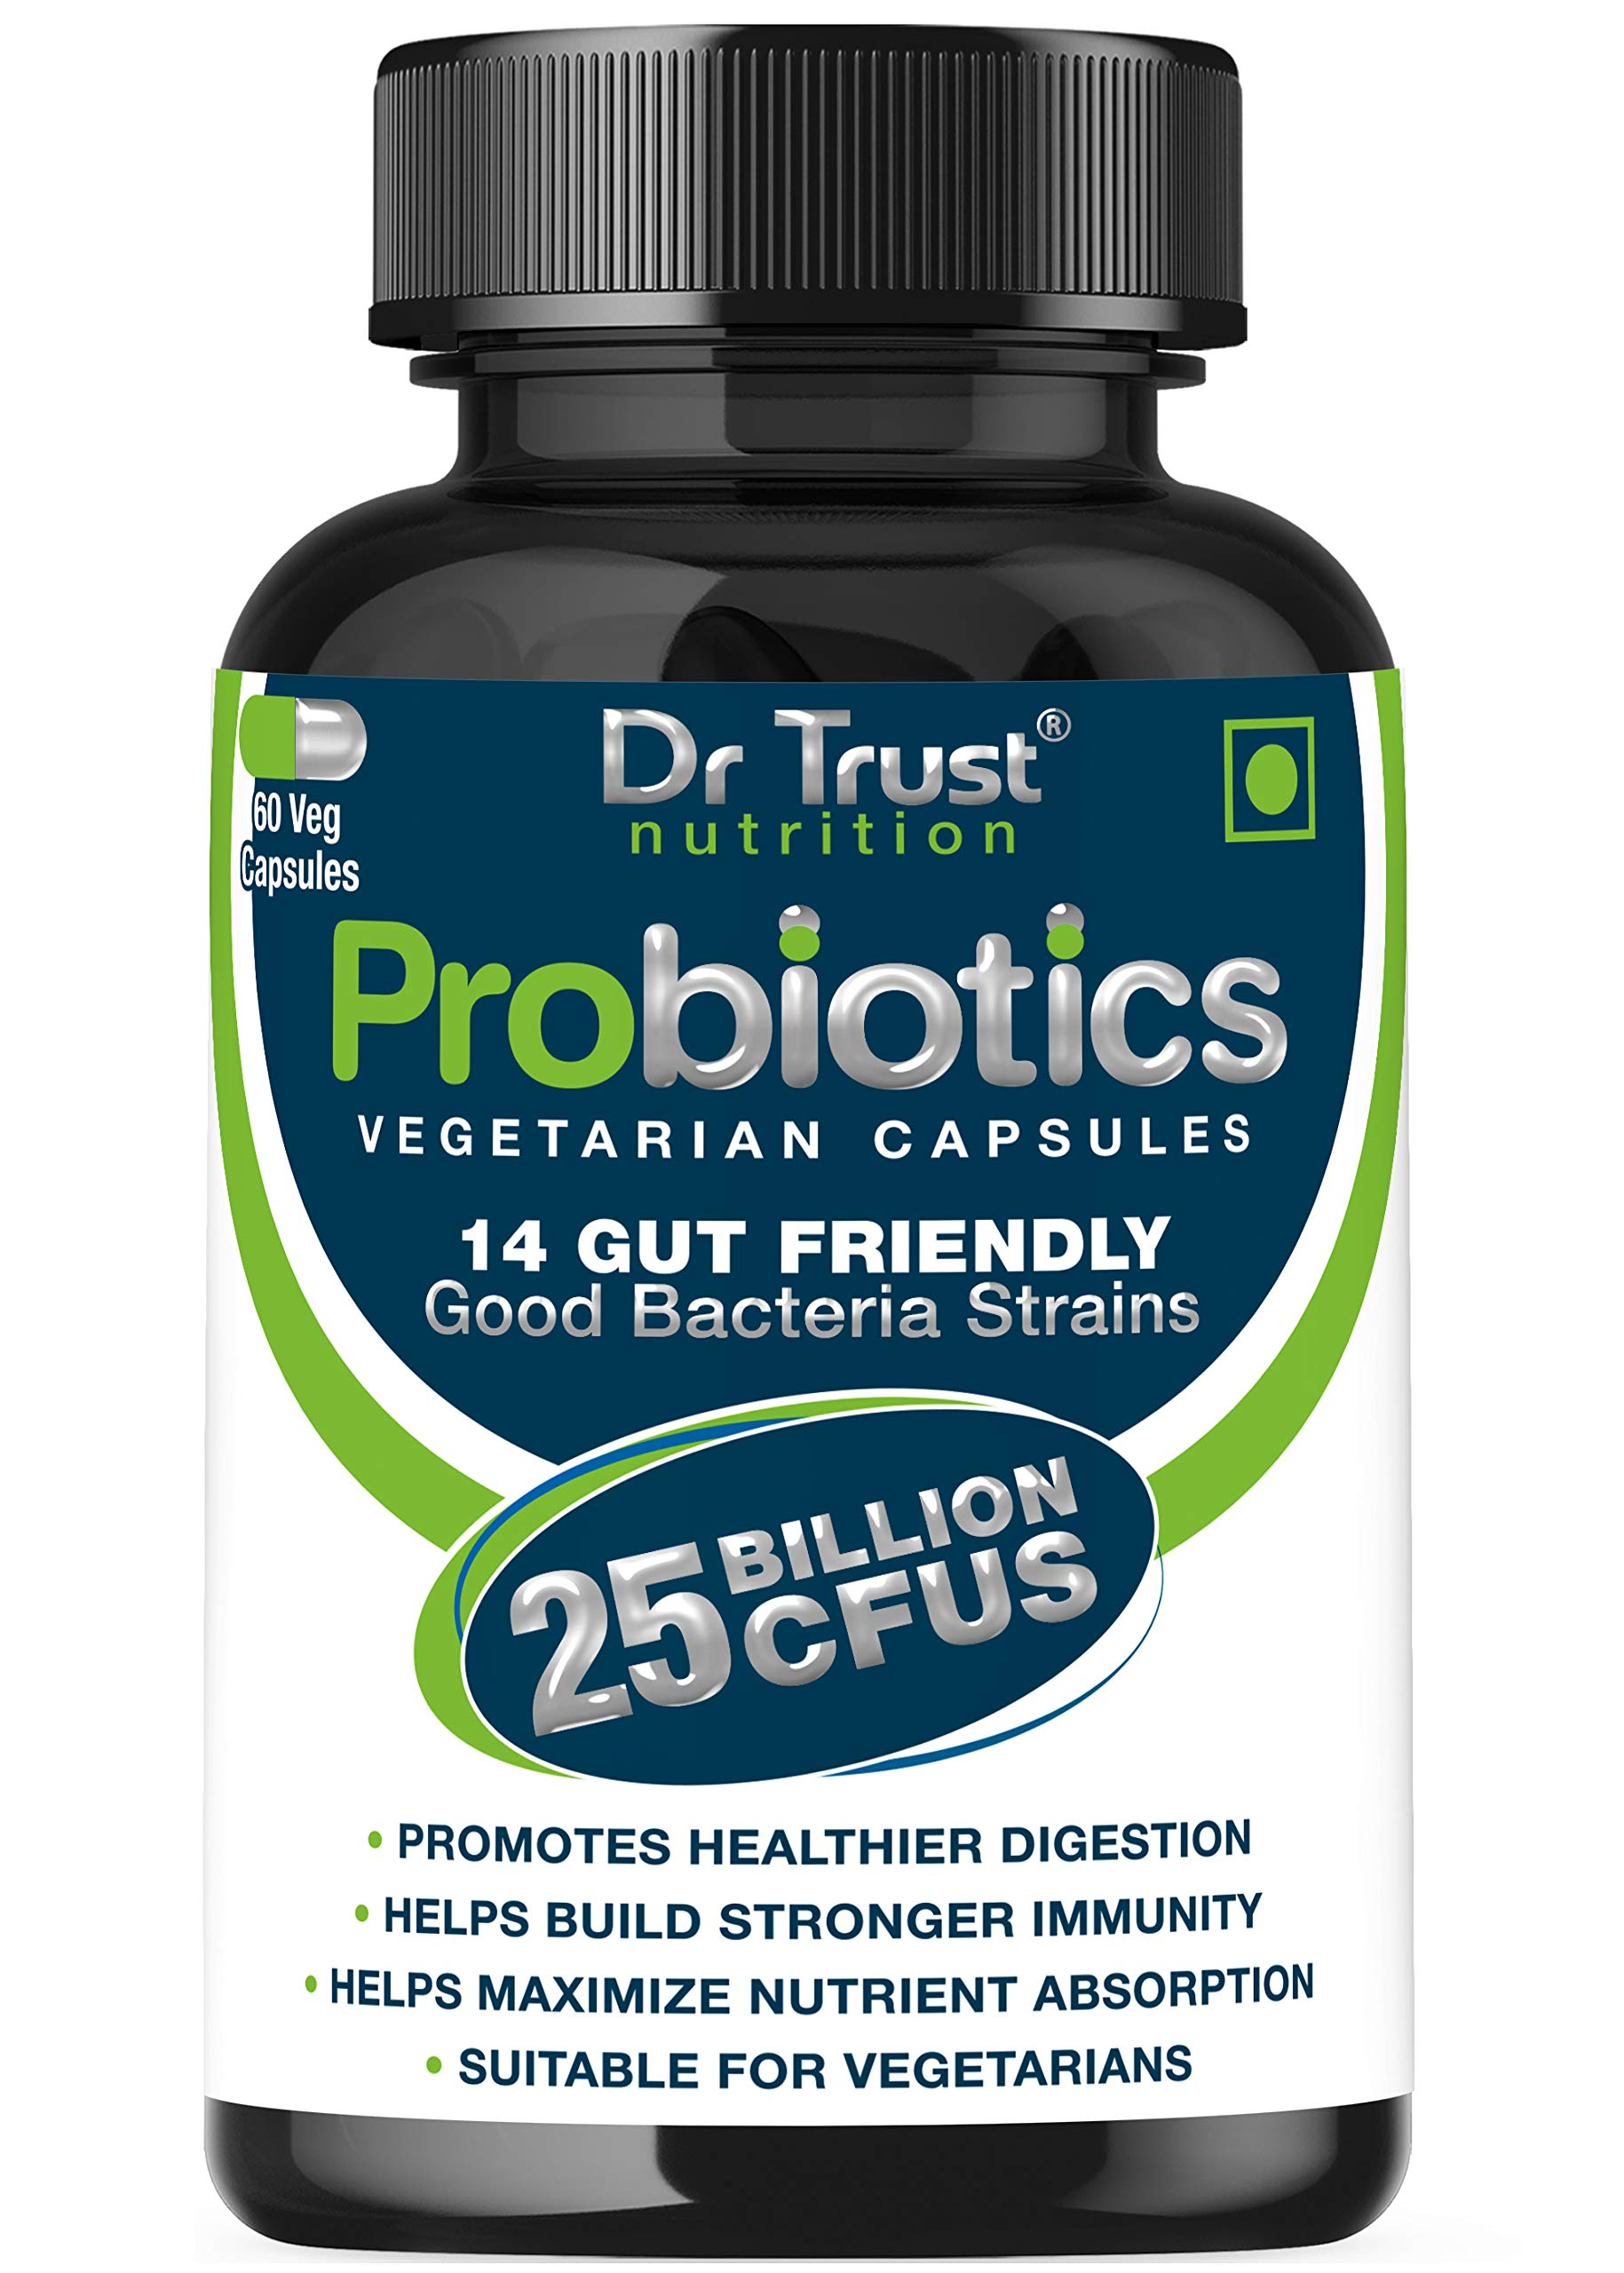 Dr Trust (USA) Advanced Probiotics blend Digestive Enzymes 100% Natural 60 Vegetarian Support Supplements Capsules With Added 25 Billion CFUS for Healthy Stomach Digestion men and women